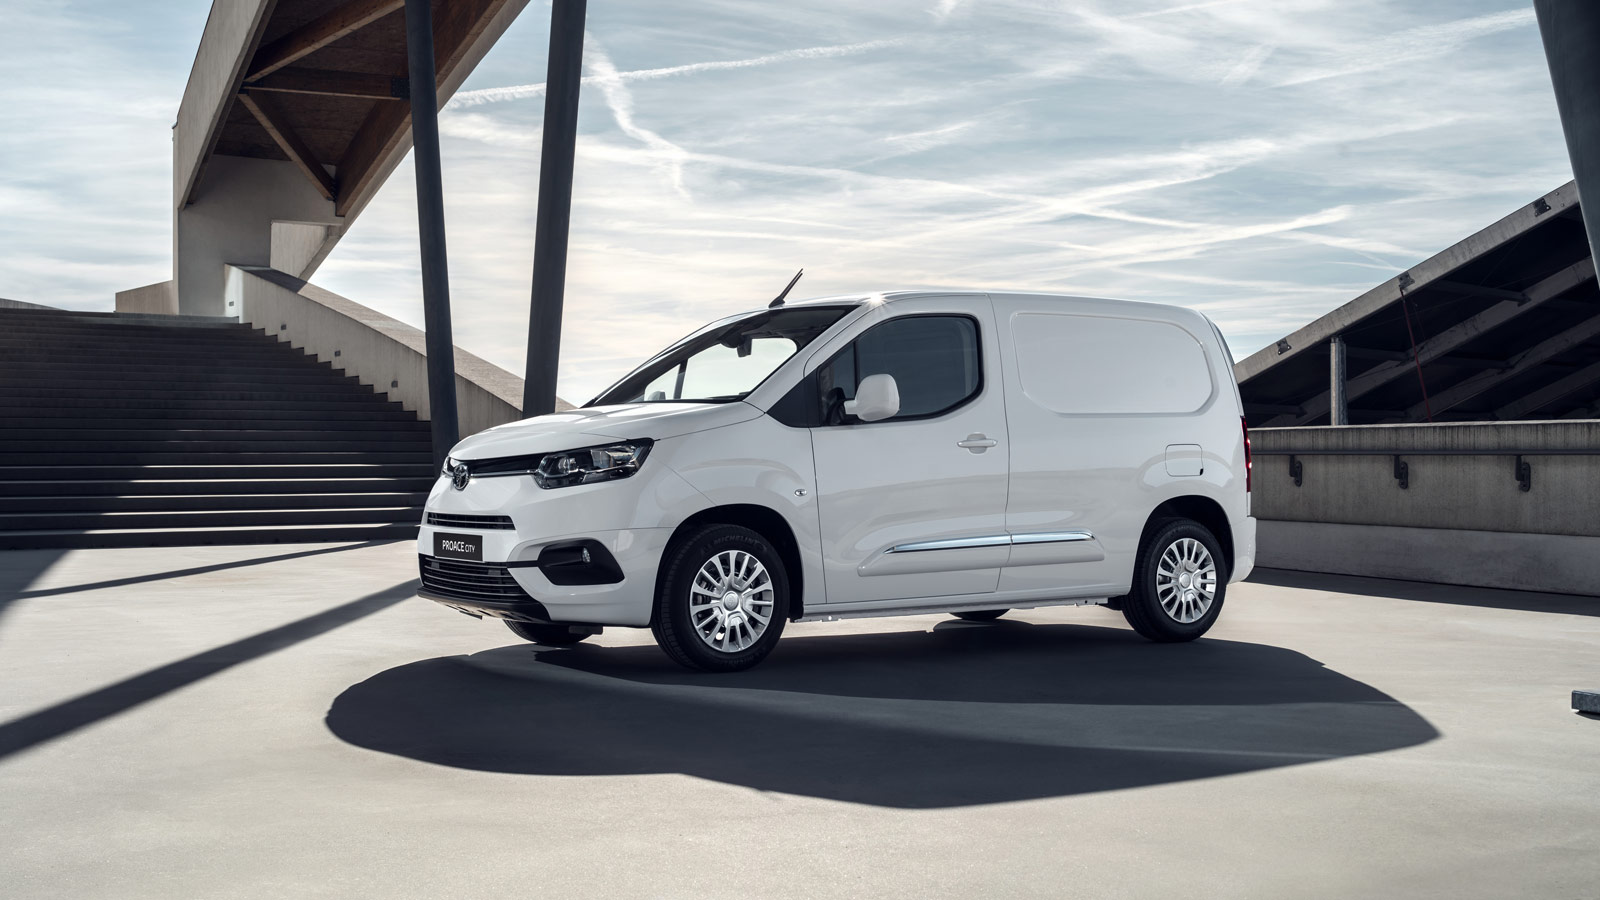 All-New Toyota Proace City has arrived to Grandons Toyota Cork